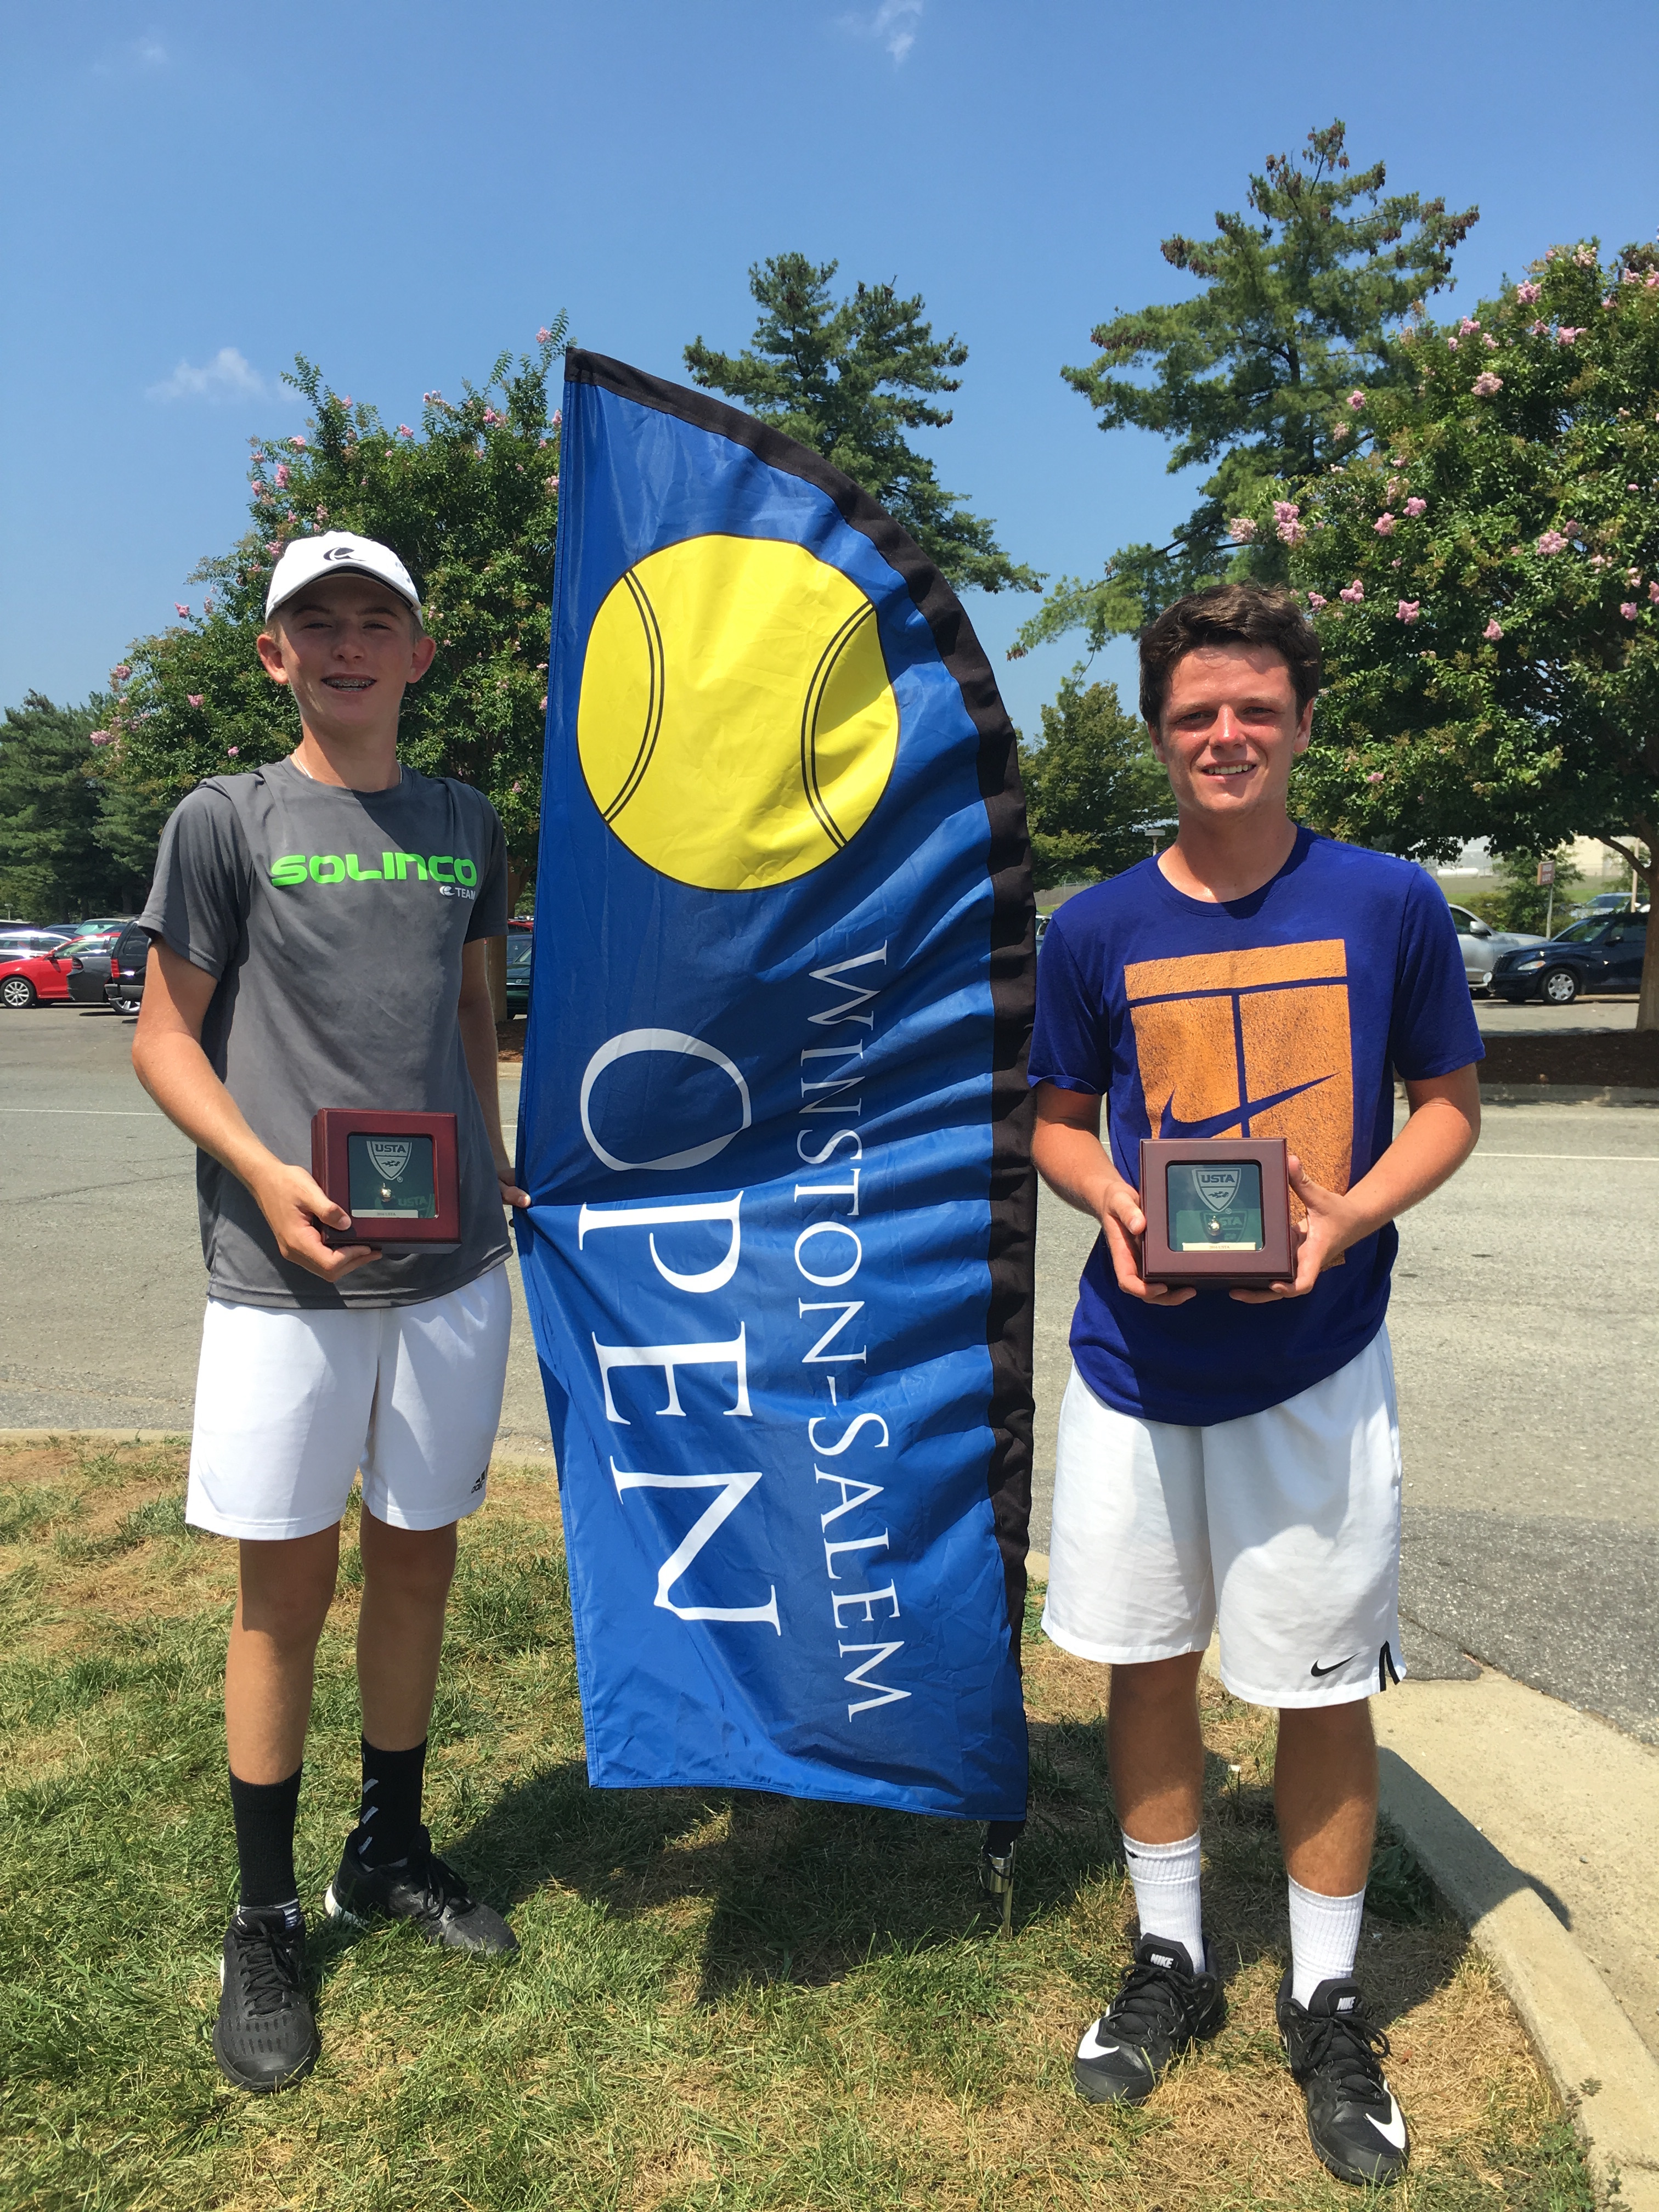 National Doubles Champion